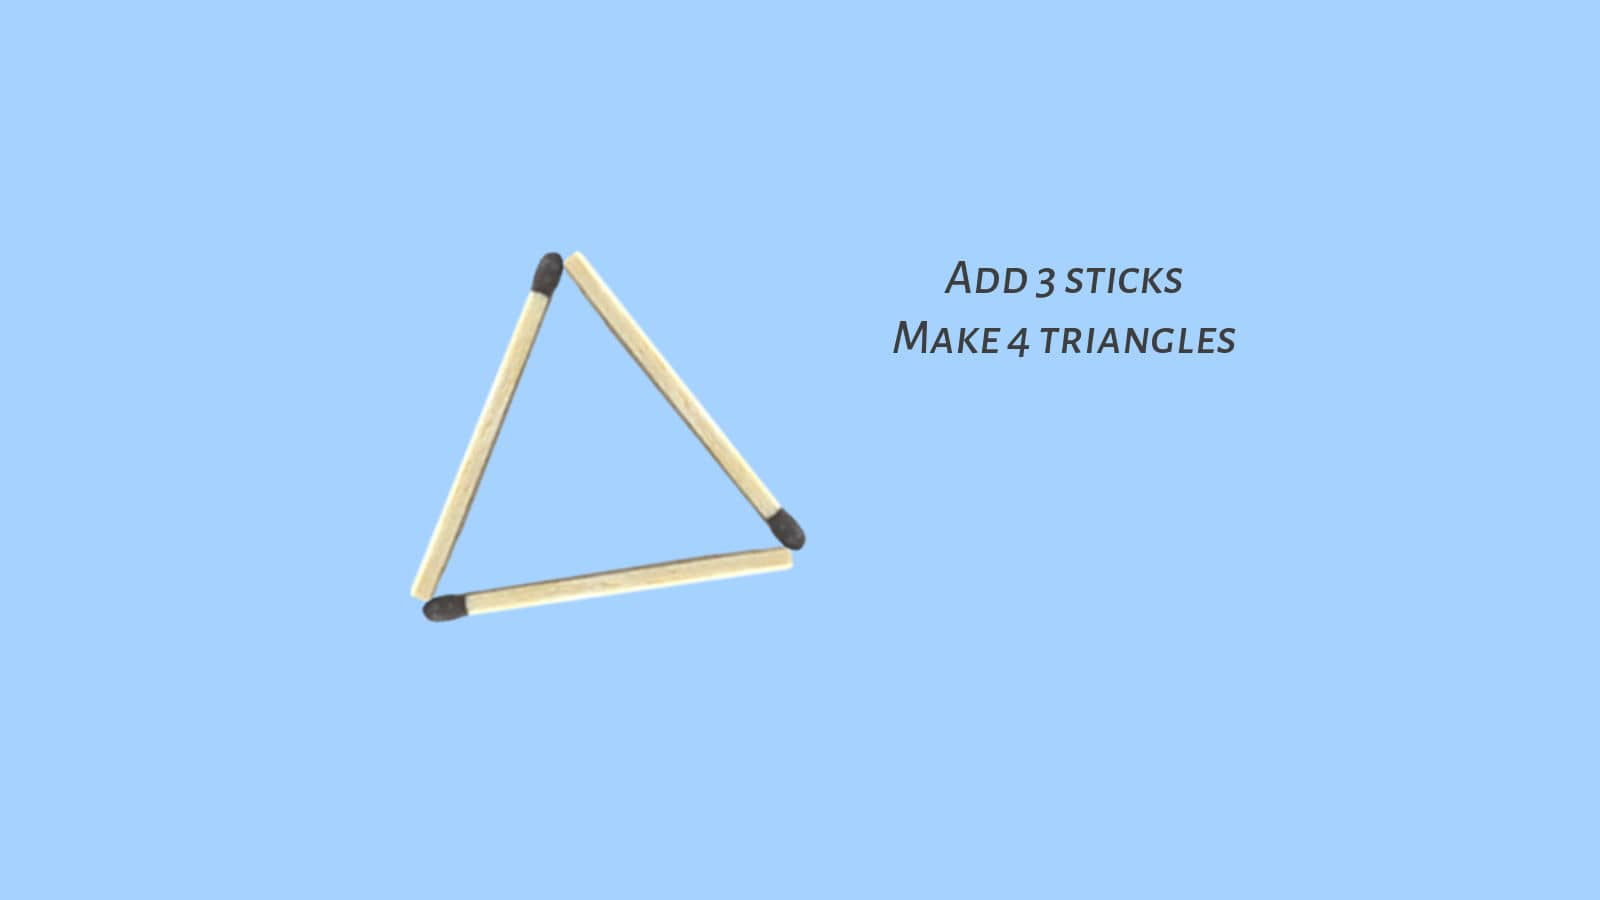 How to make 4 triangles with 6 sticks matchstick puzzle